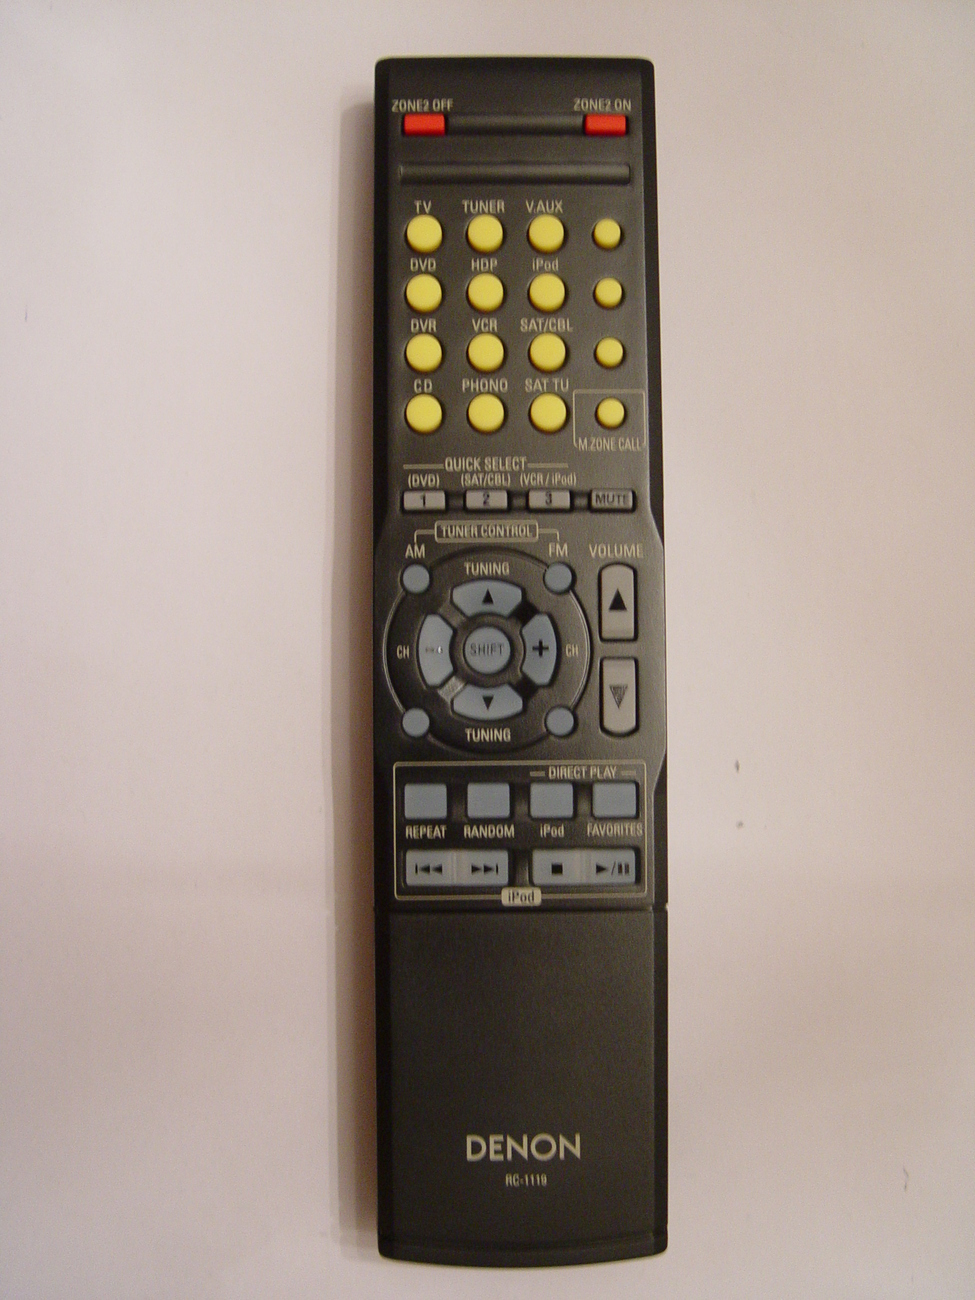 DENON RC-1119 REMOTE CONTROL PART # 963307004540D